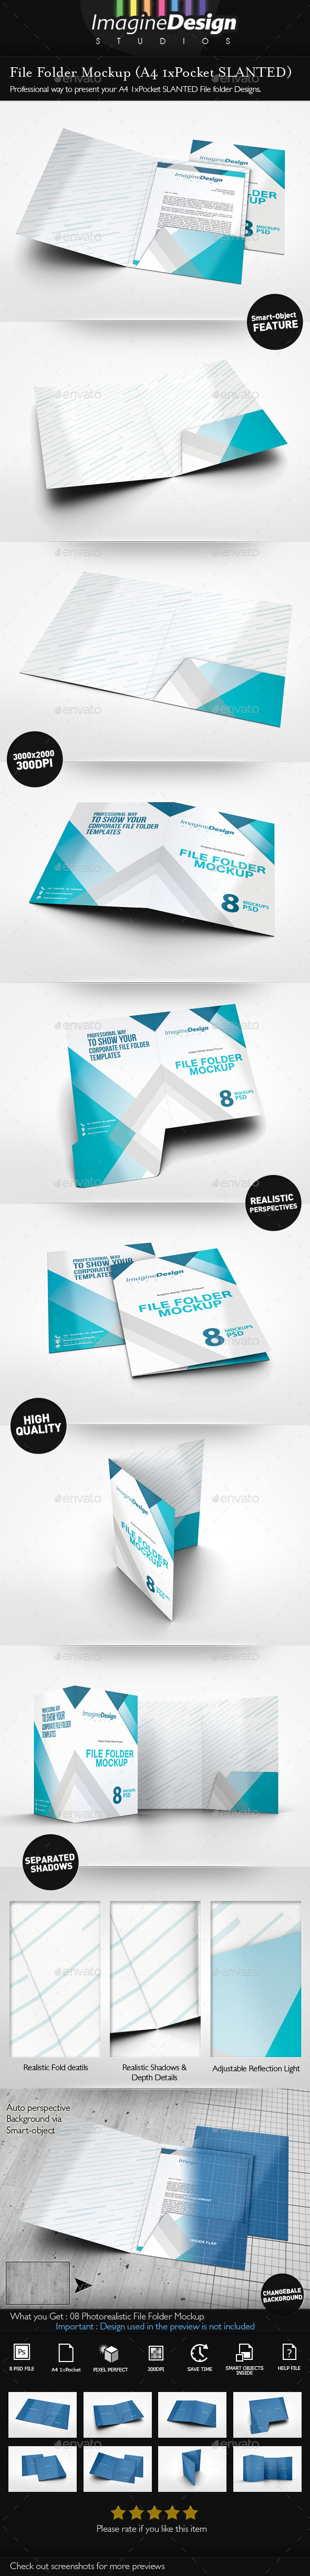 GraphicRiver File Folder Mockup 10595159